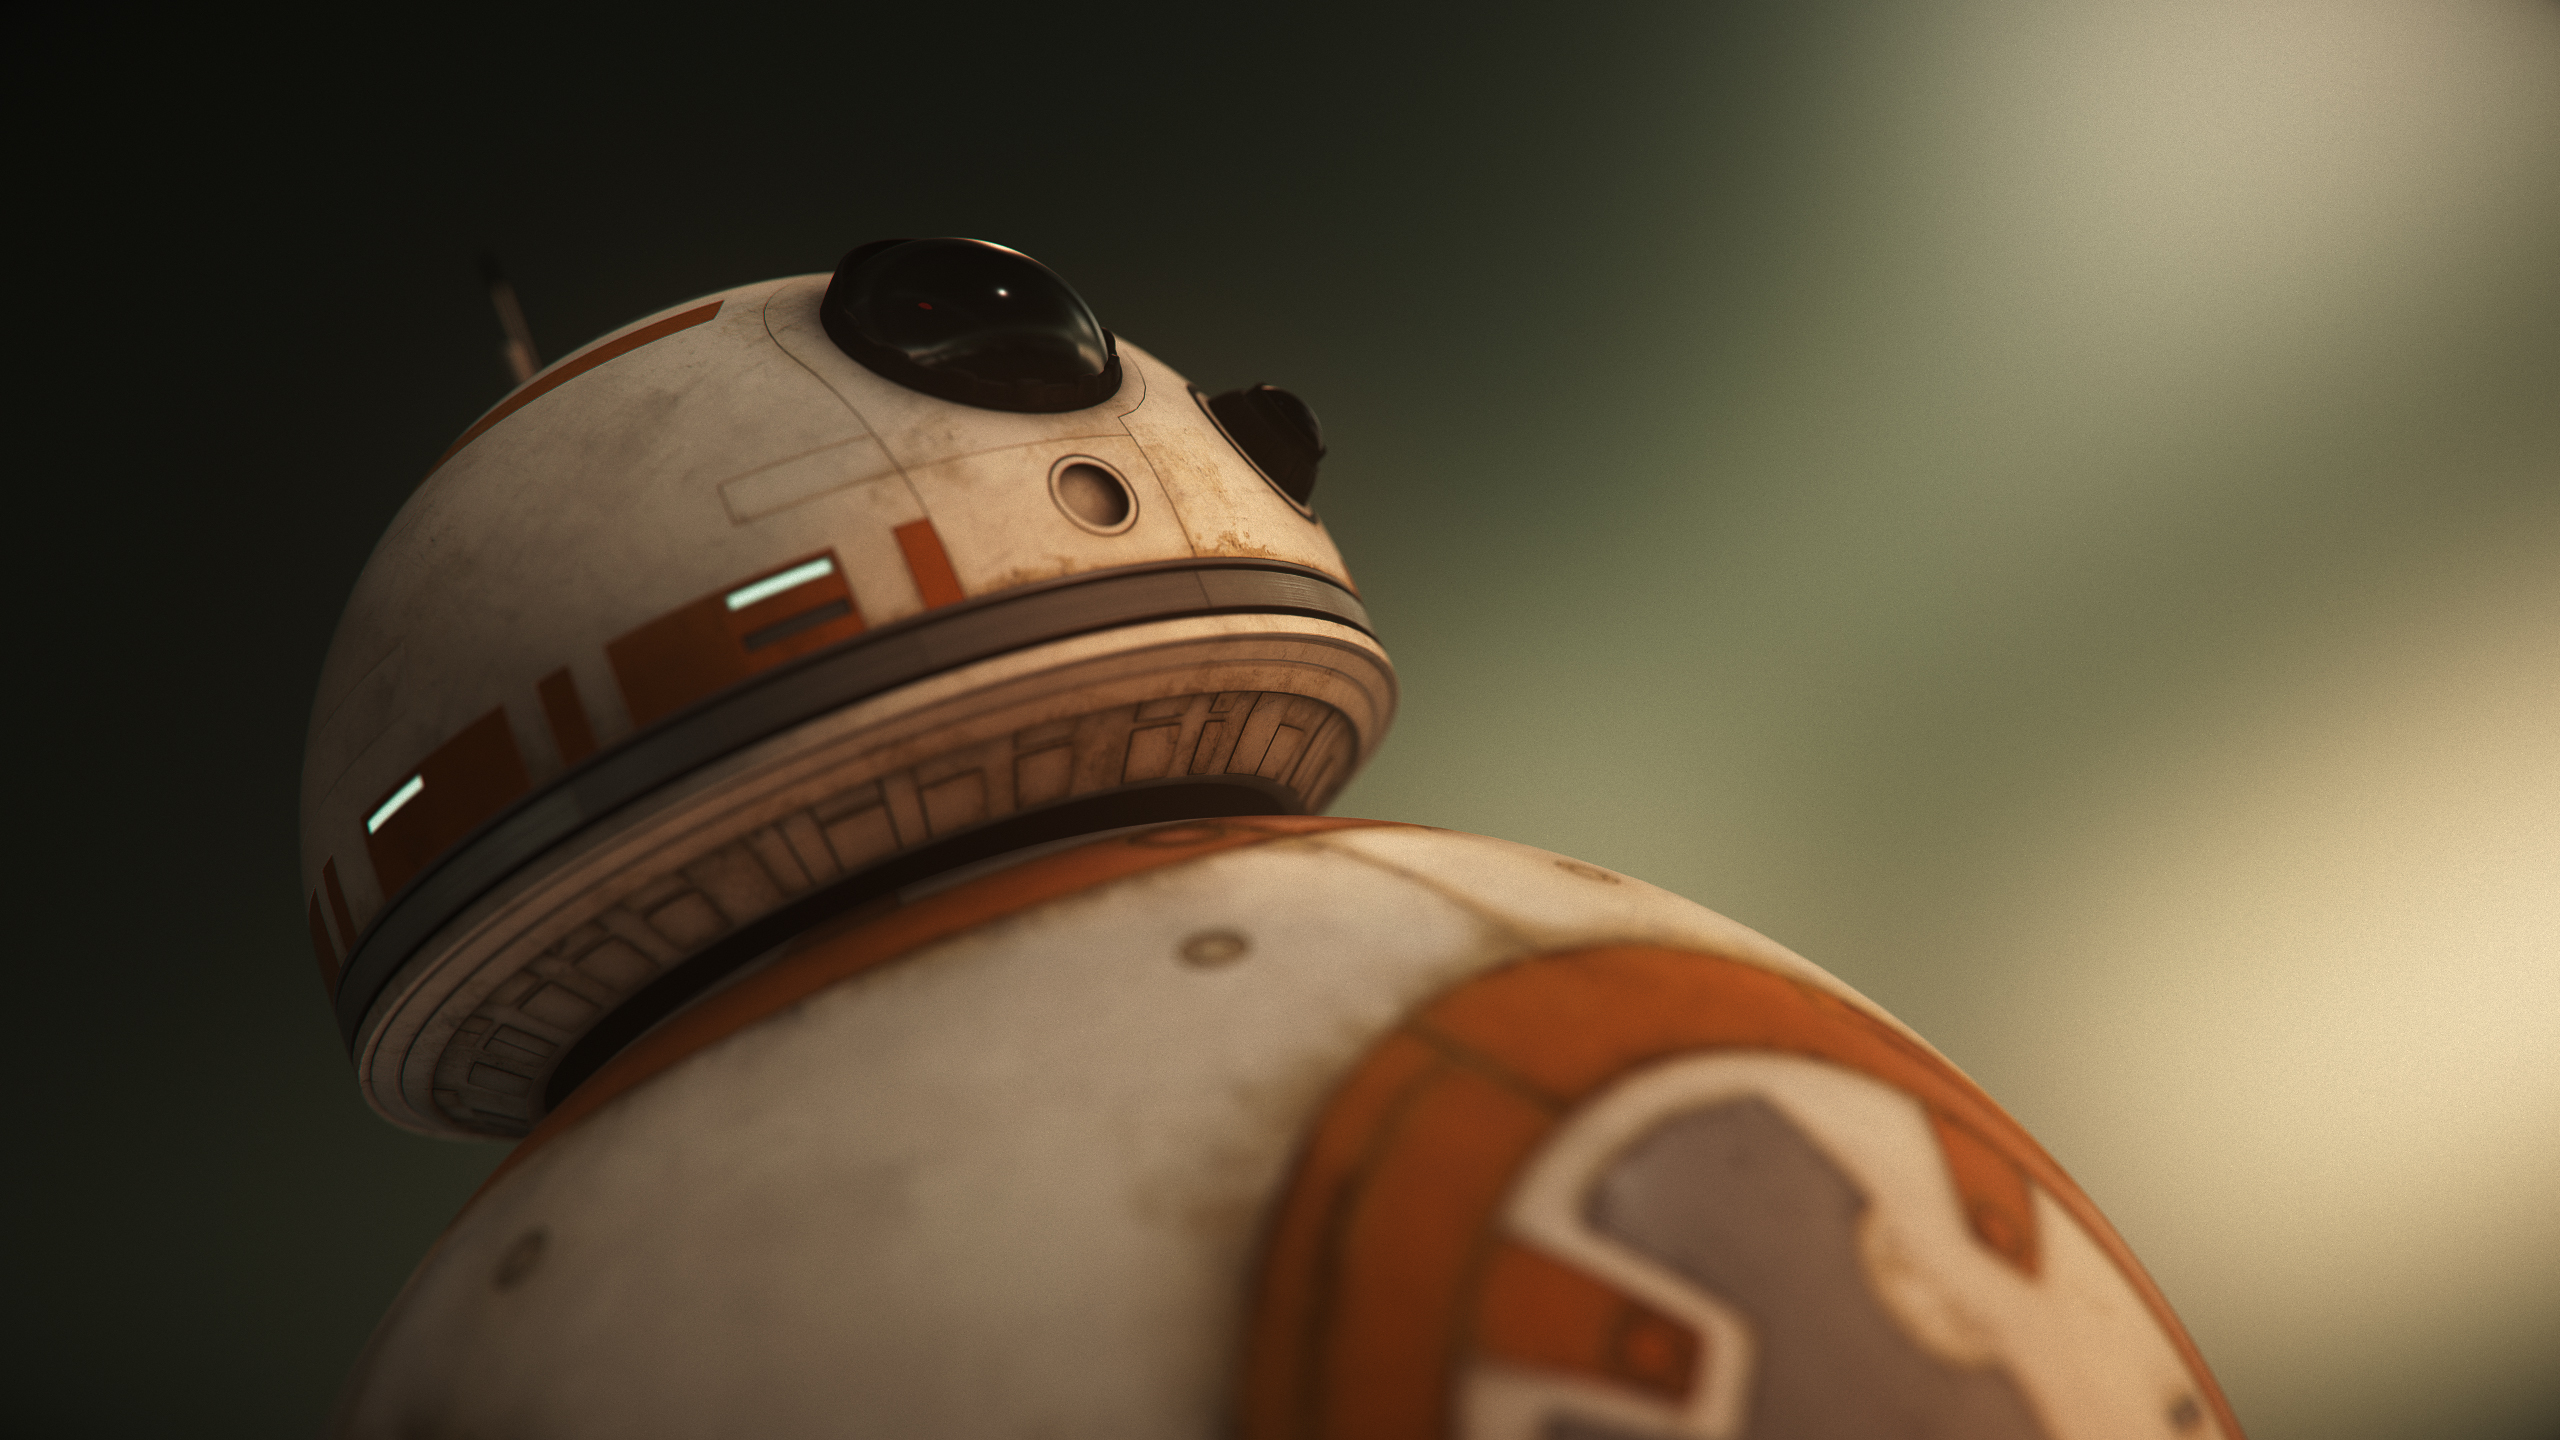 BB 8 Droid in Star Wars Wallpapers HD Wallpapers 2560x1440